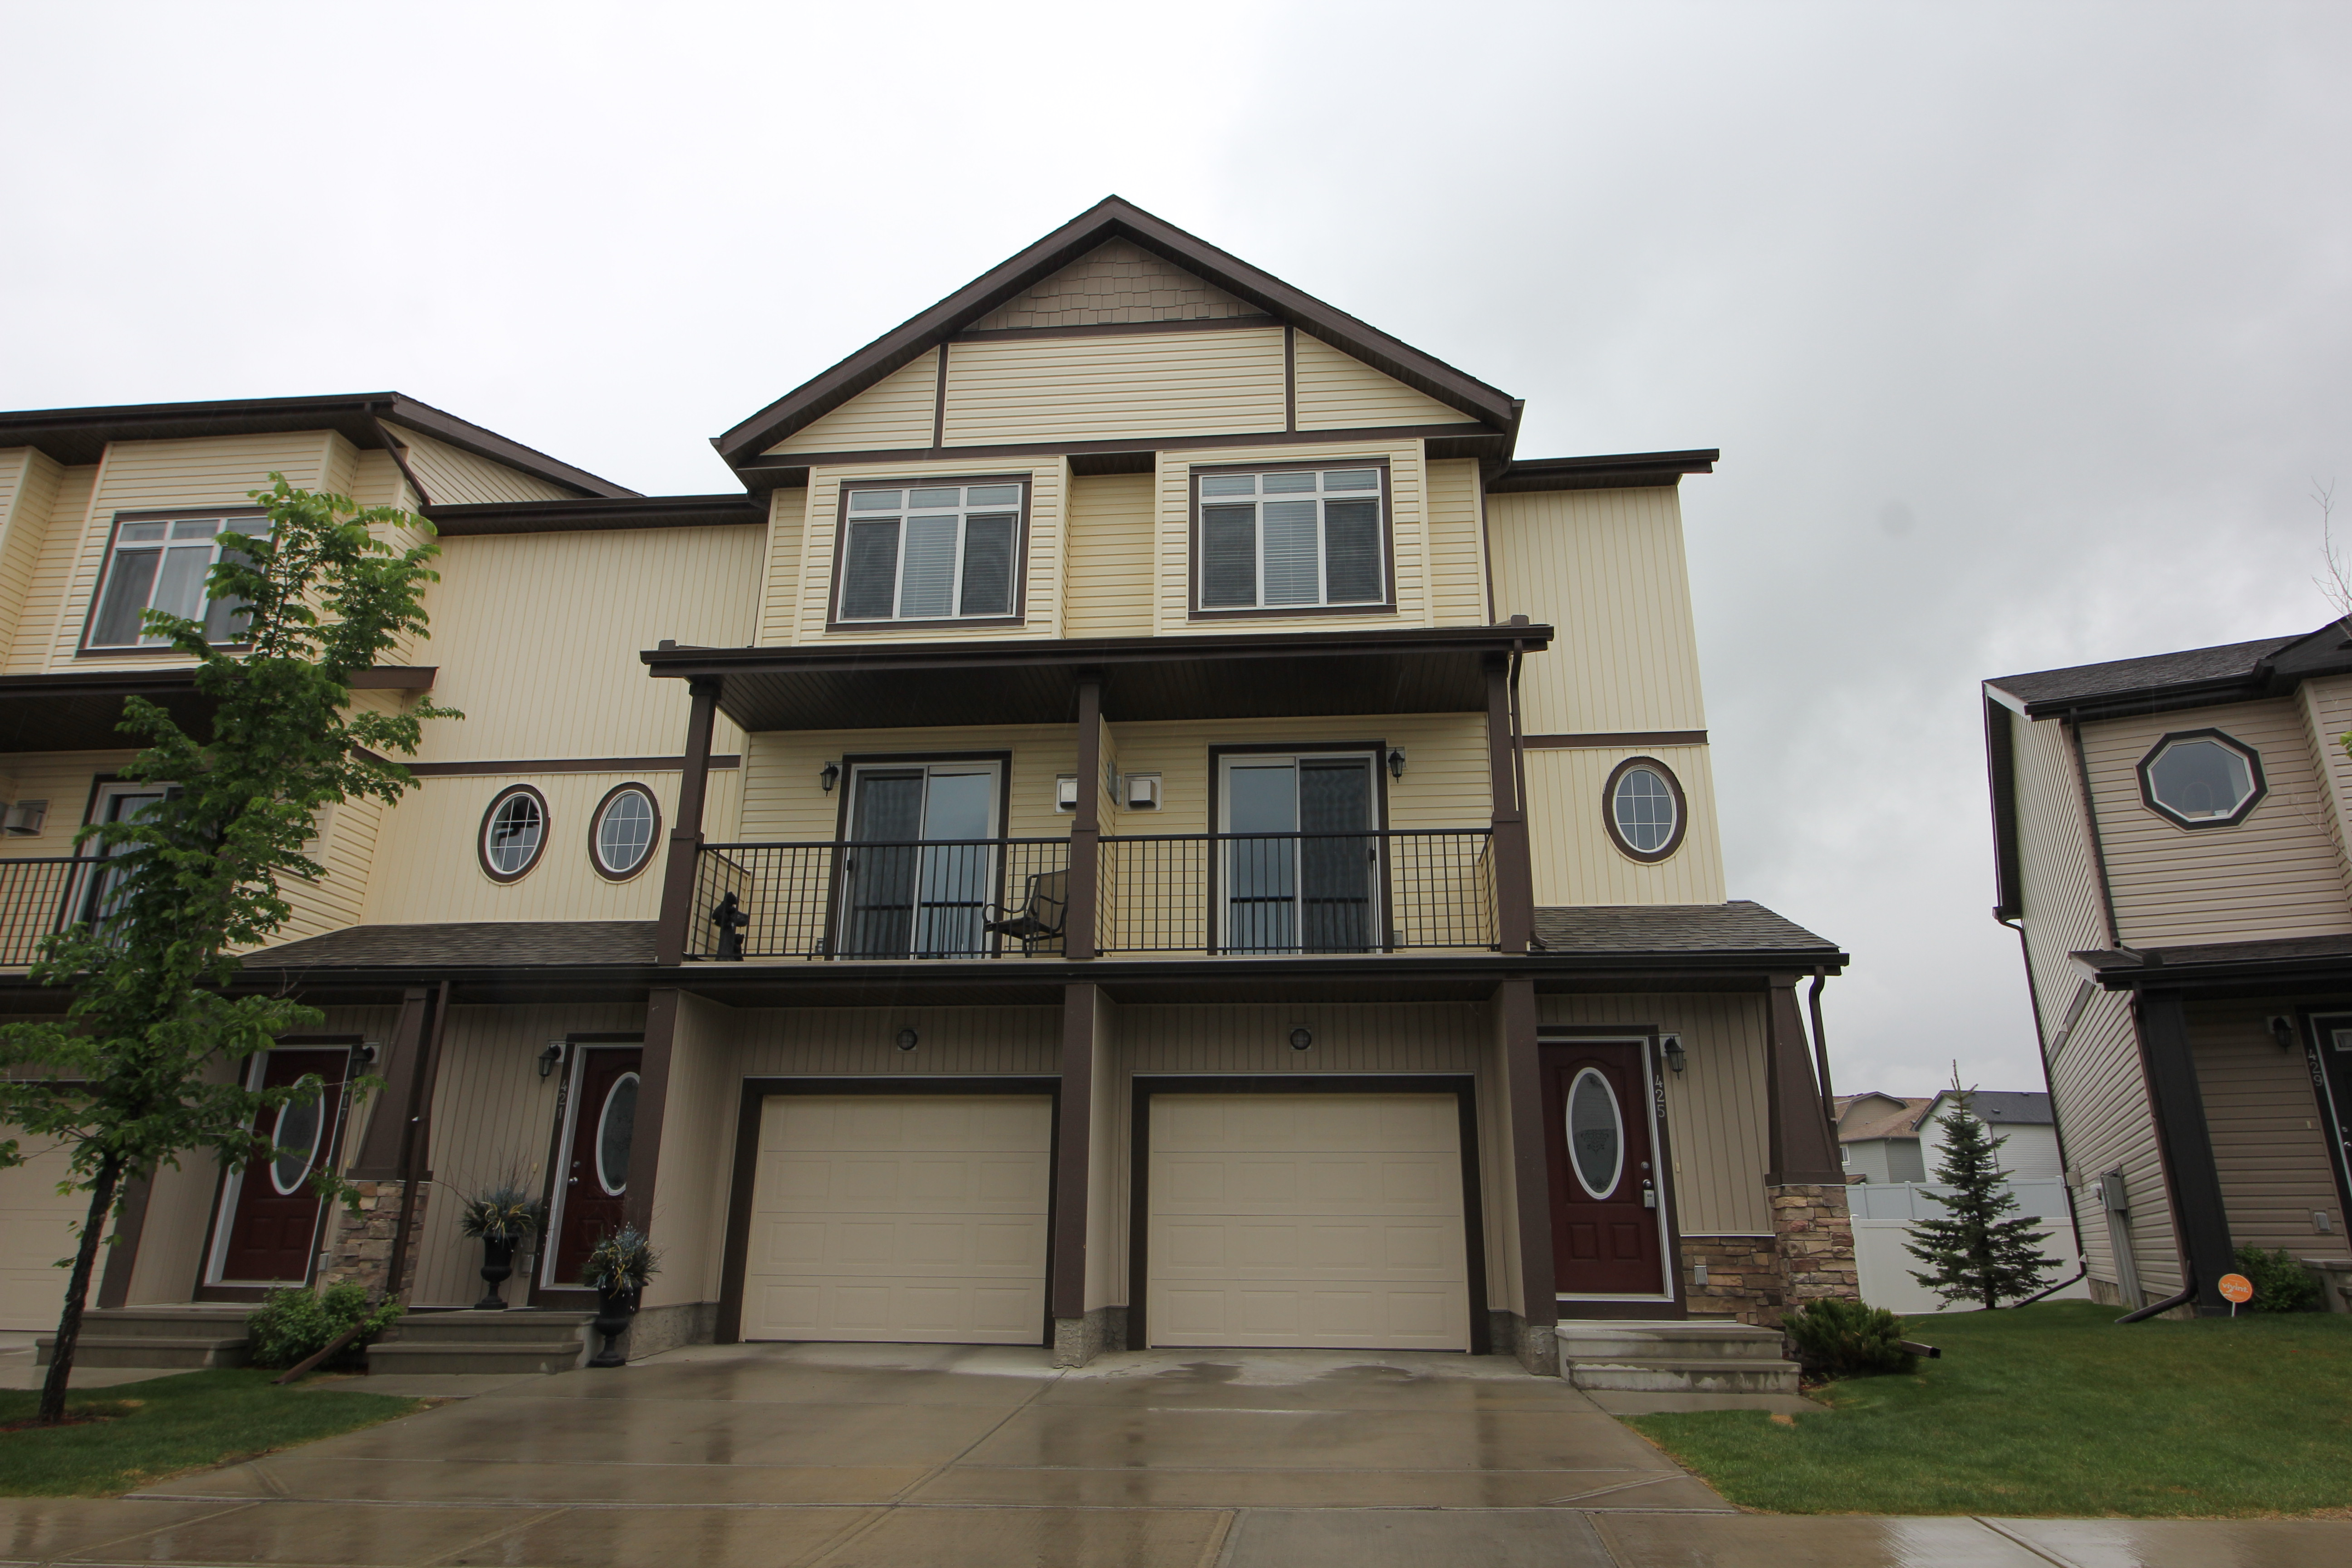 3 Bdrms, 2.5 bath, single garage Townhome in Copperfield with walk out basement!